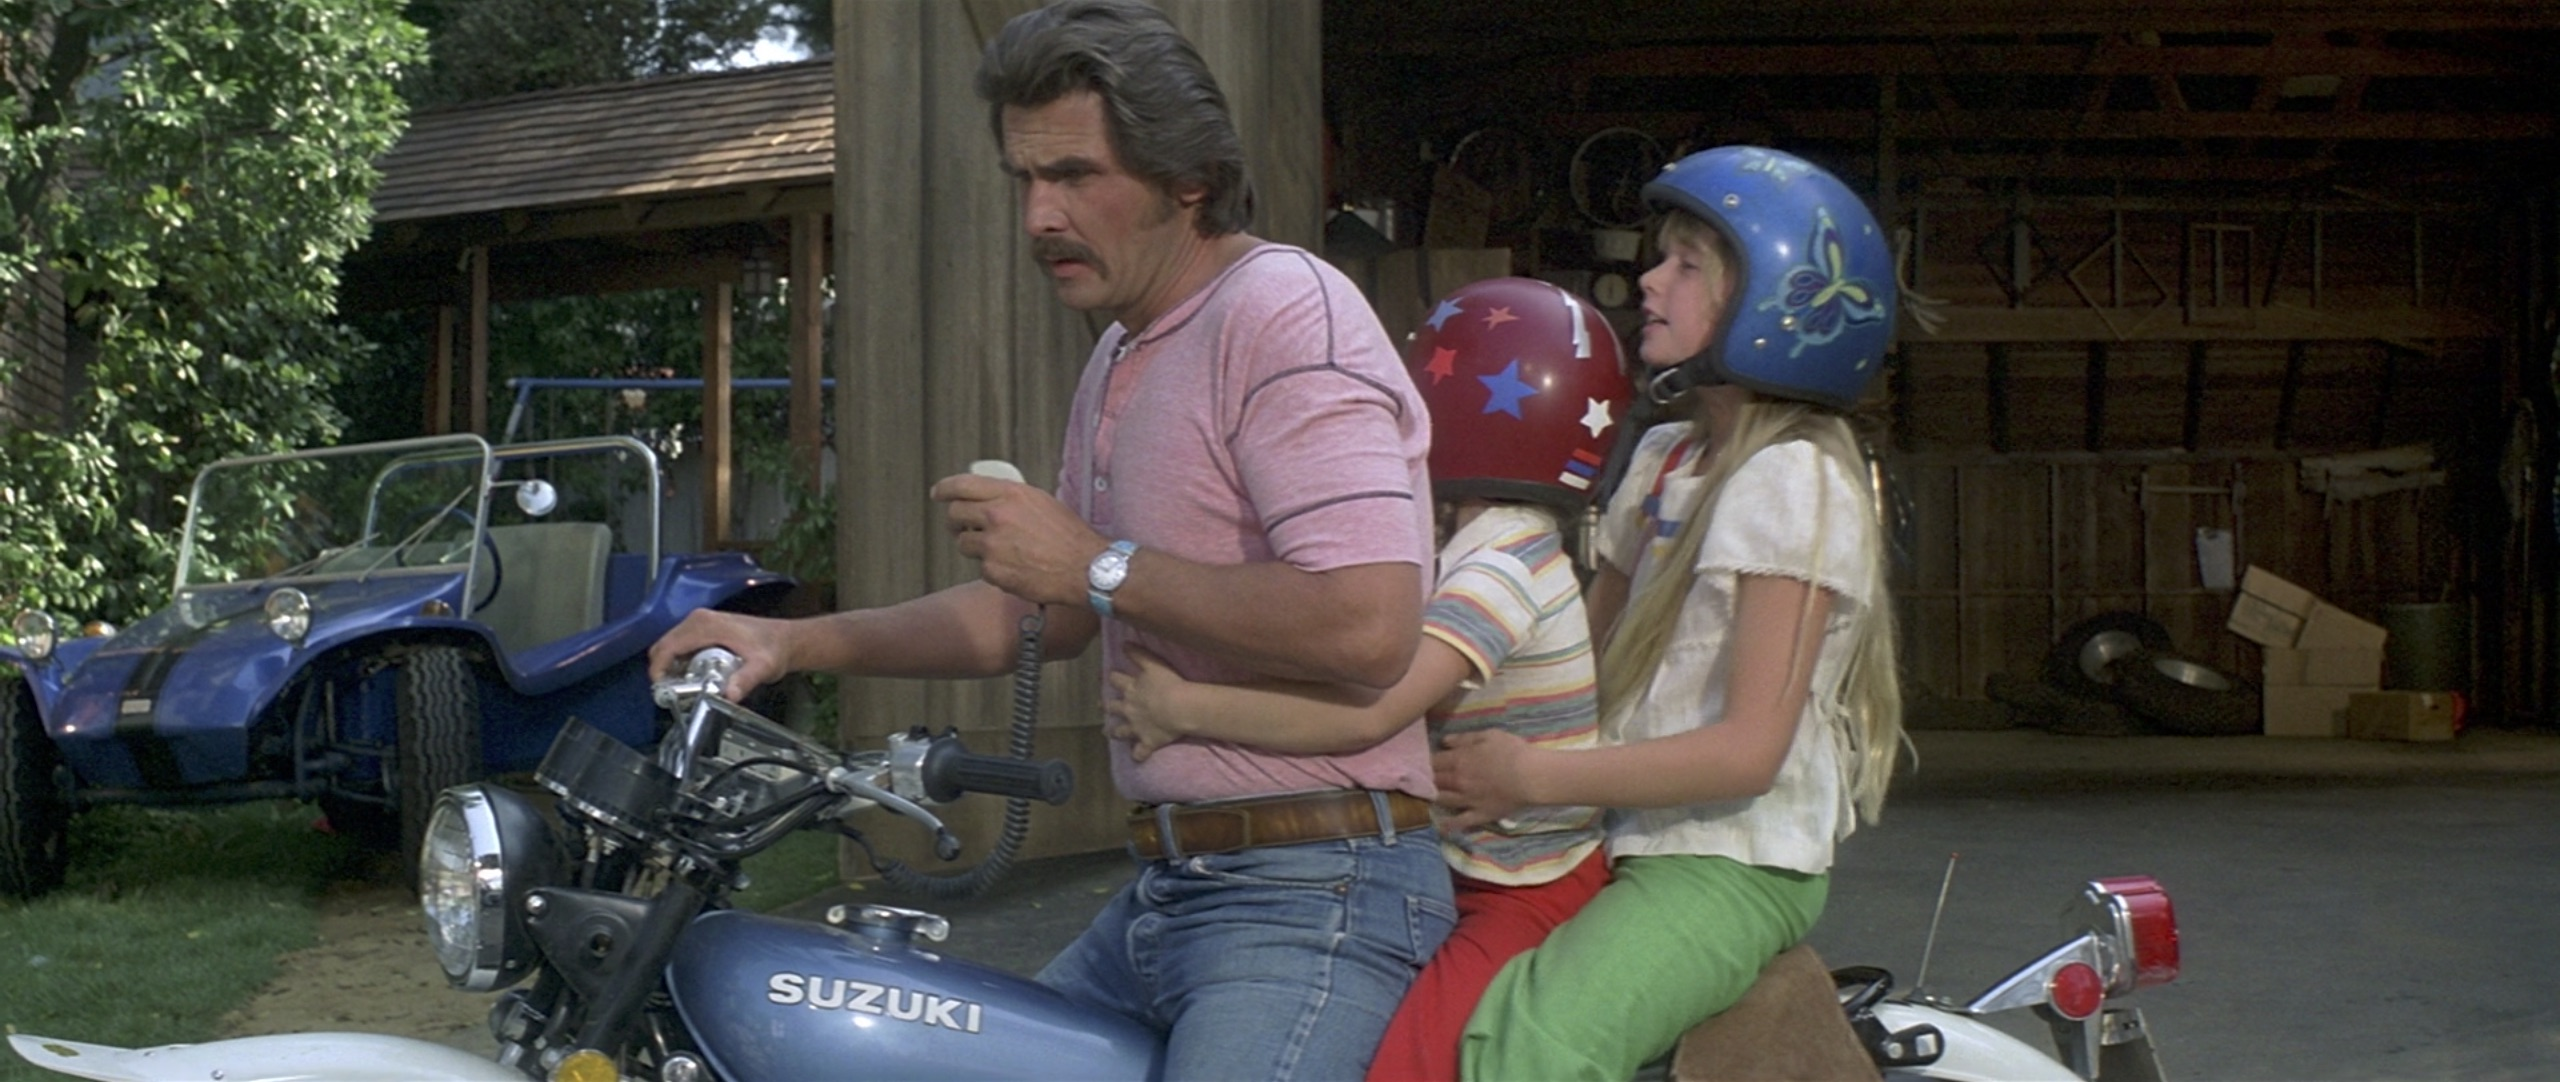 The Car James Brolin with kids